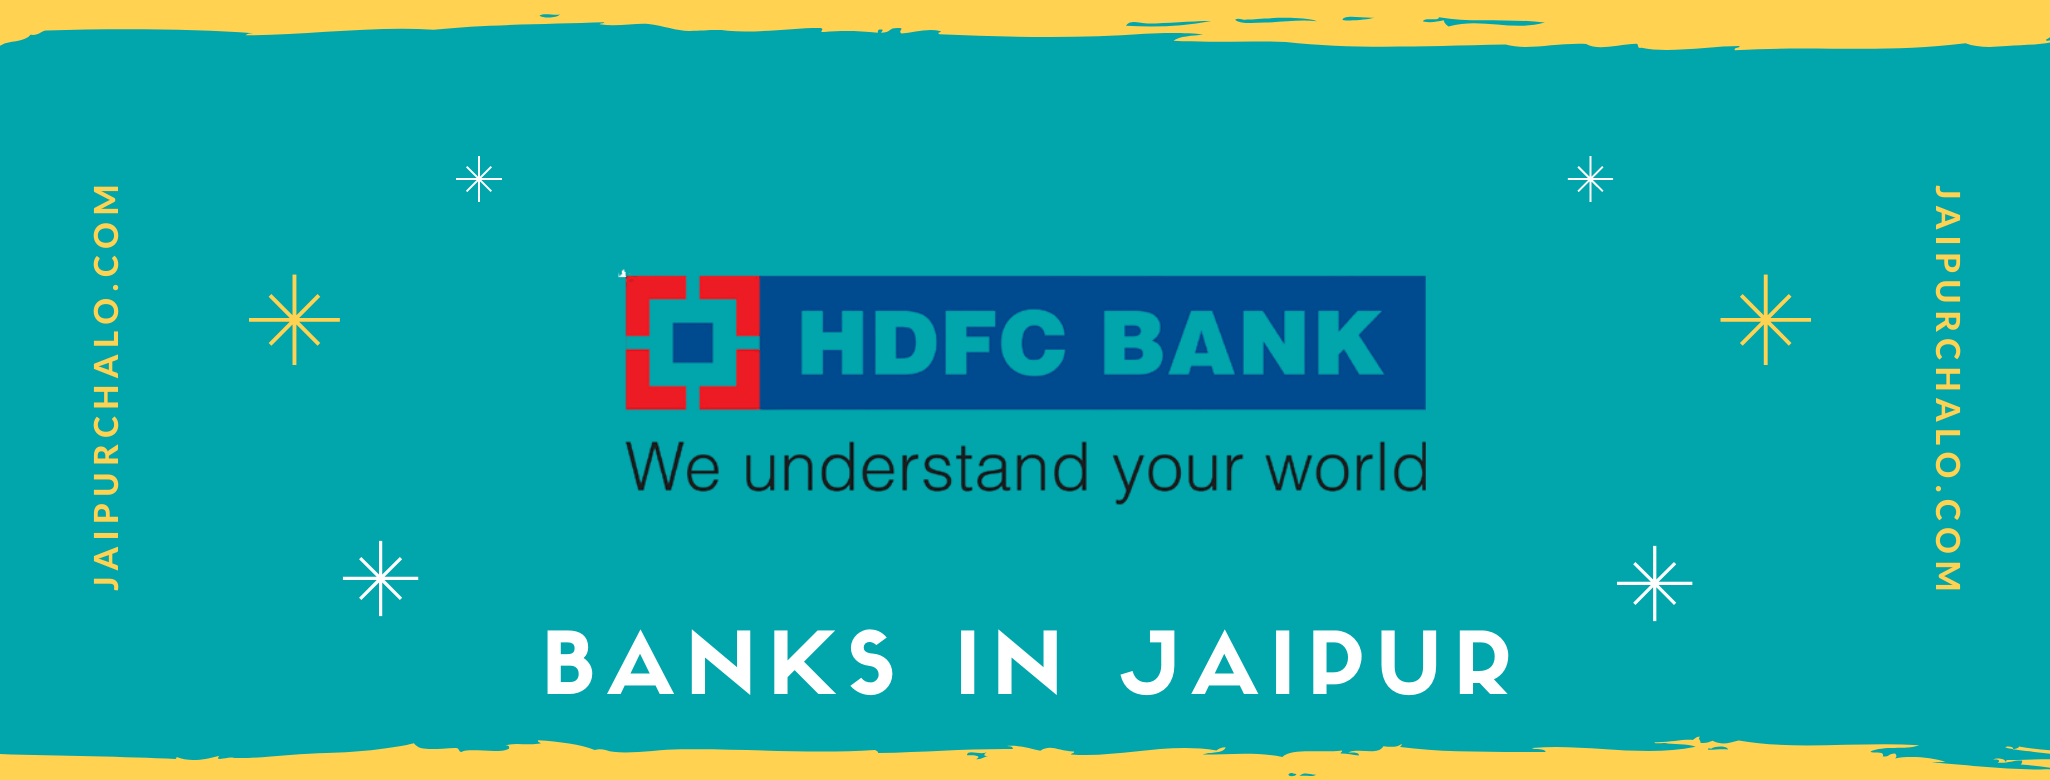 HDFC bank in Jaipur